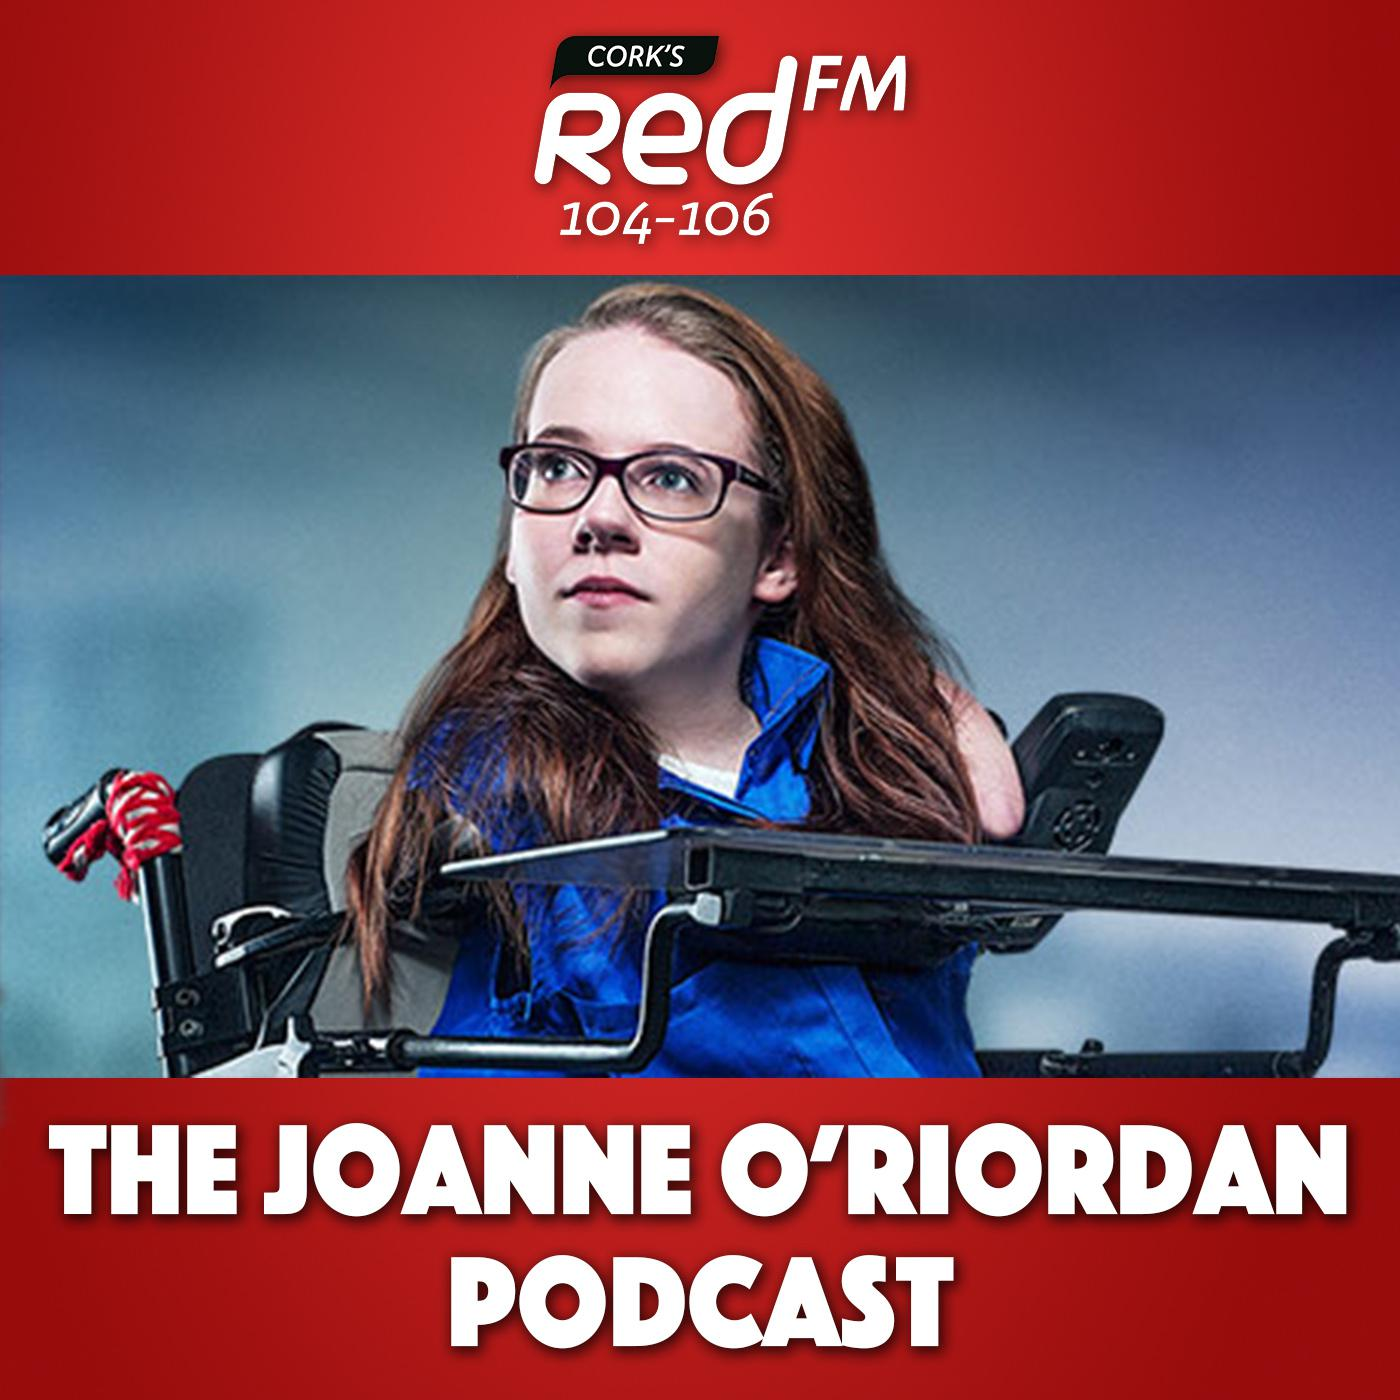 The Joanne O'Riordan Podcast | Cork's RedFM